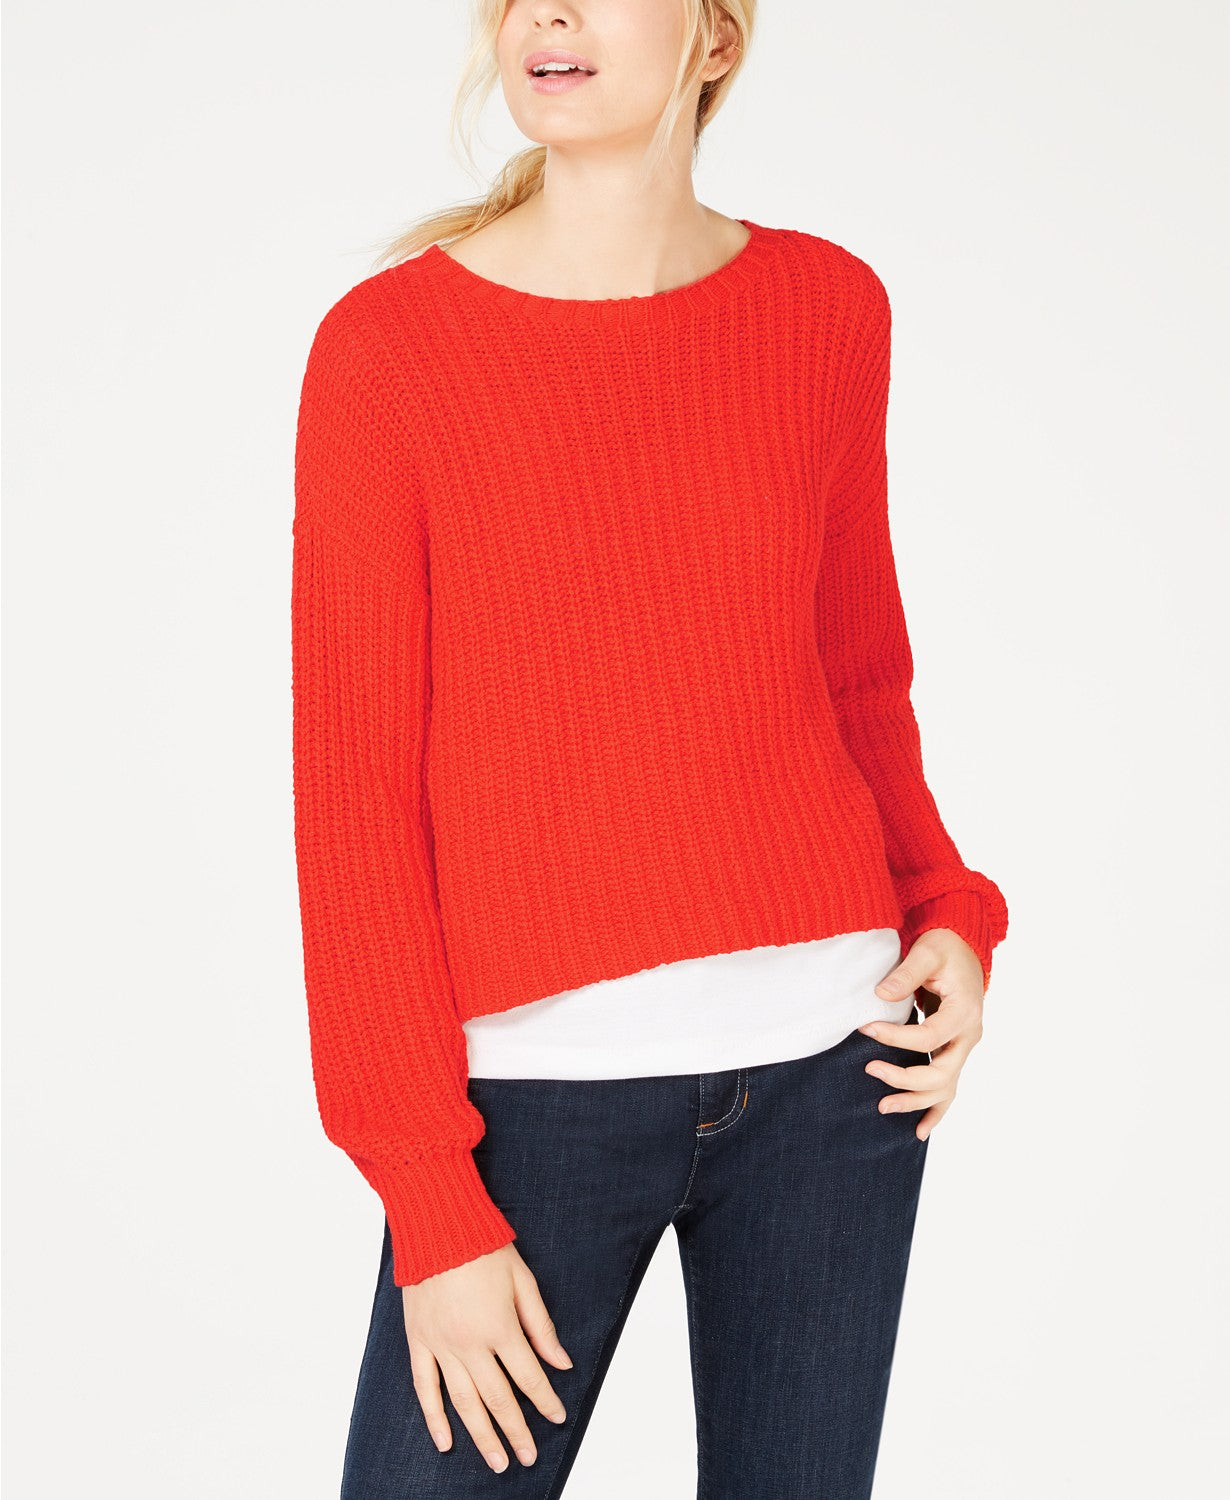 Eileen Fisher Womens Petites Crop Crew Neck Sweater